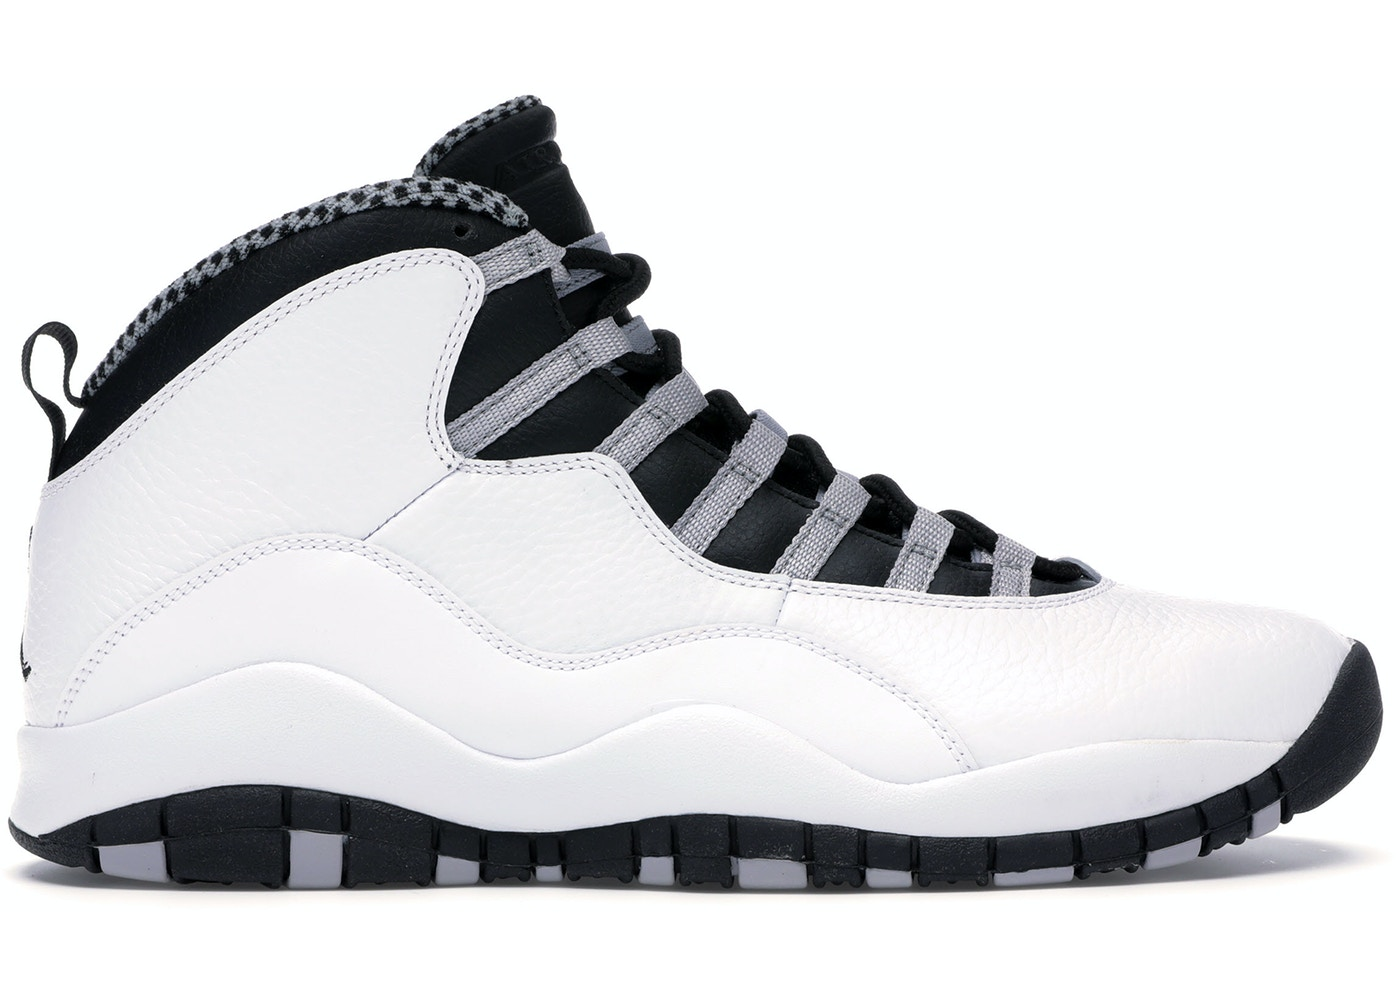 check out 82311 93c80 Jordan 10 Retro Steel (2013)